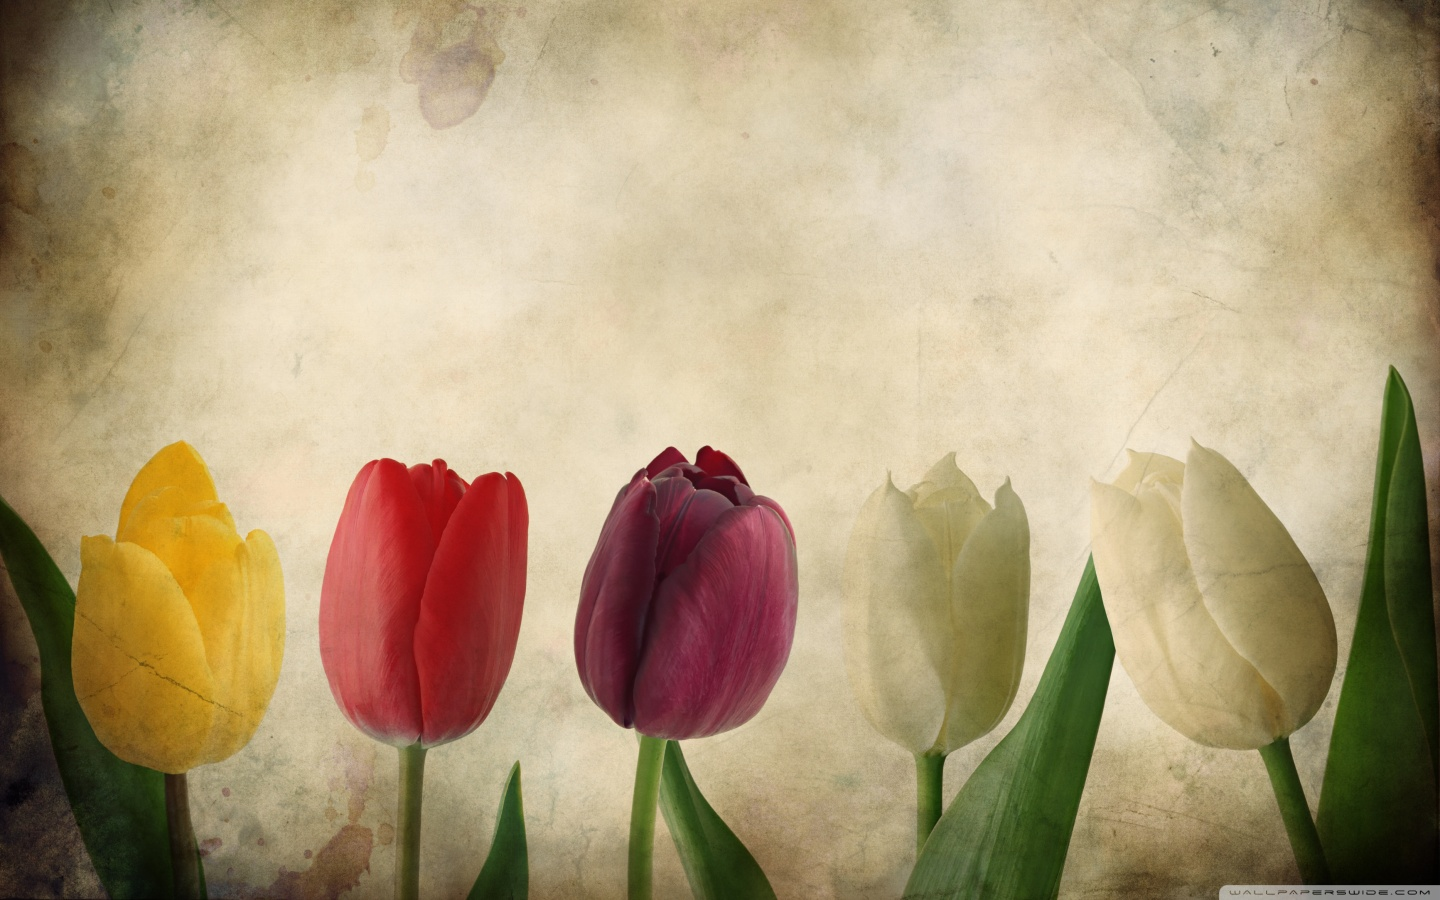 tulips vintage wallpaper flowerwallpaper beautifulflowerjpg 1440x900